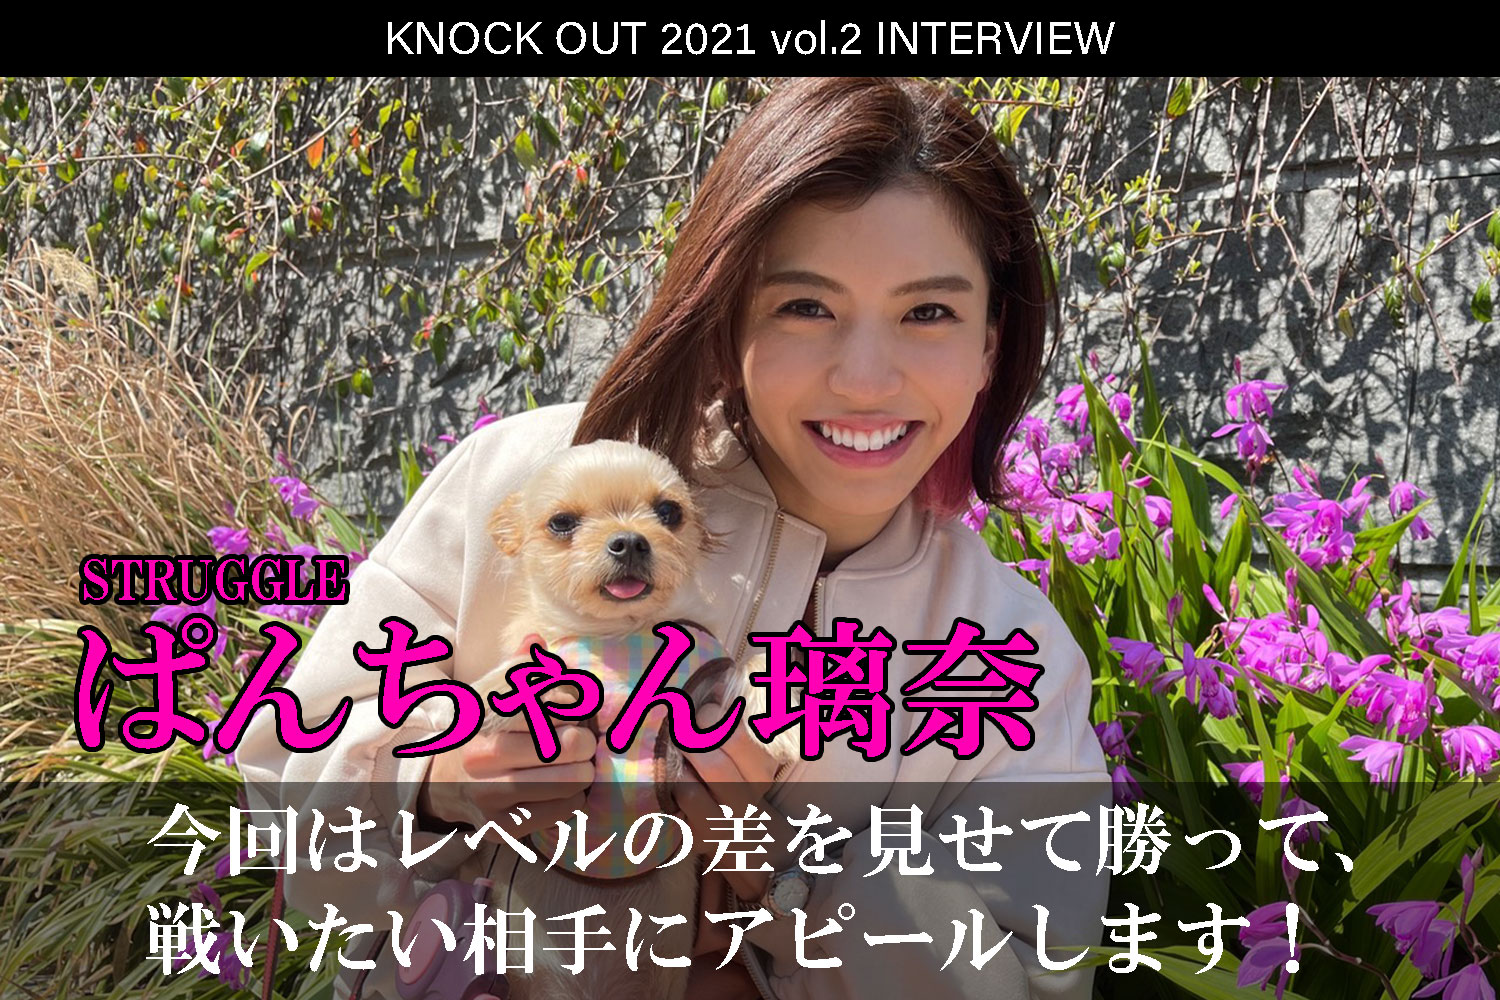 4.25 KNOCK OUT 2021 vol.2|ぱんちゃん璃奈インタビュー公開!